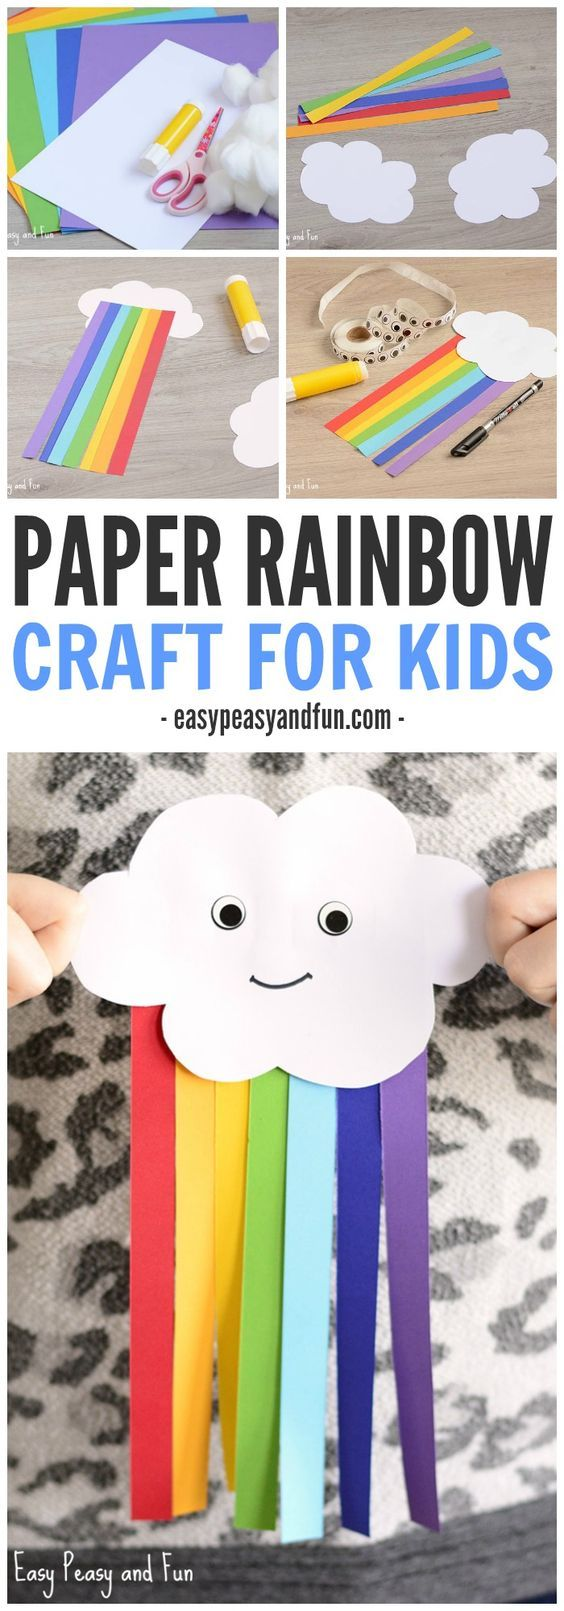 Mr. Happy cloud is here to play! This sweet cloud and paper rainbow craft for kids is a great spring project #paperrainbow #papierregenbogen